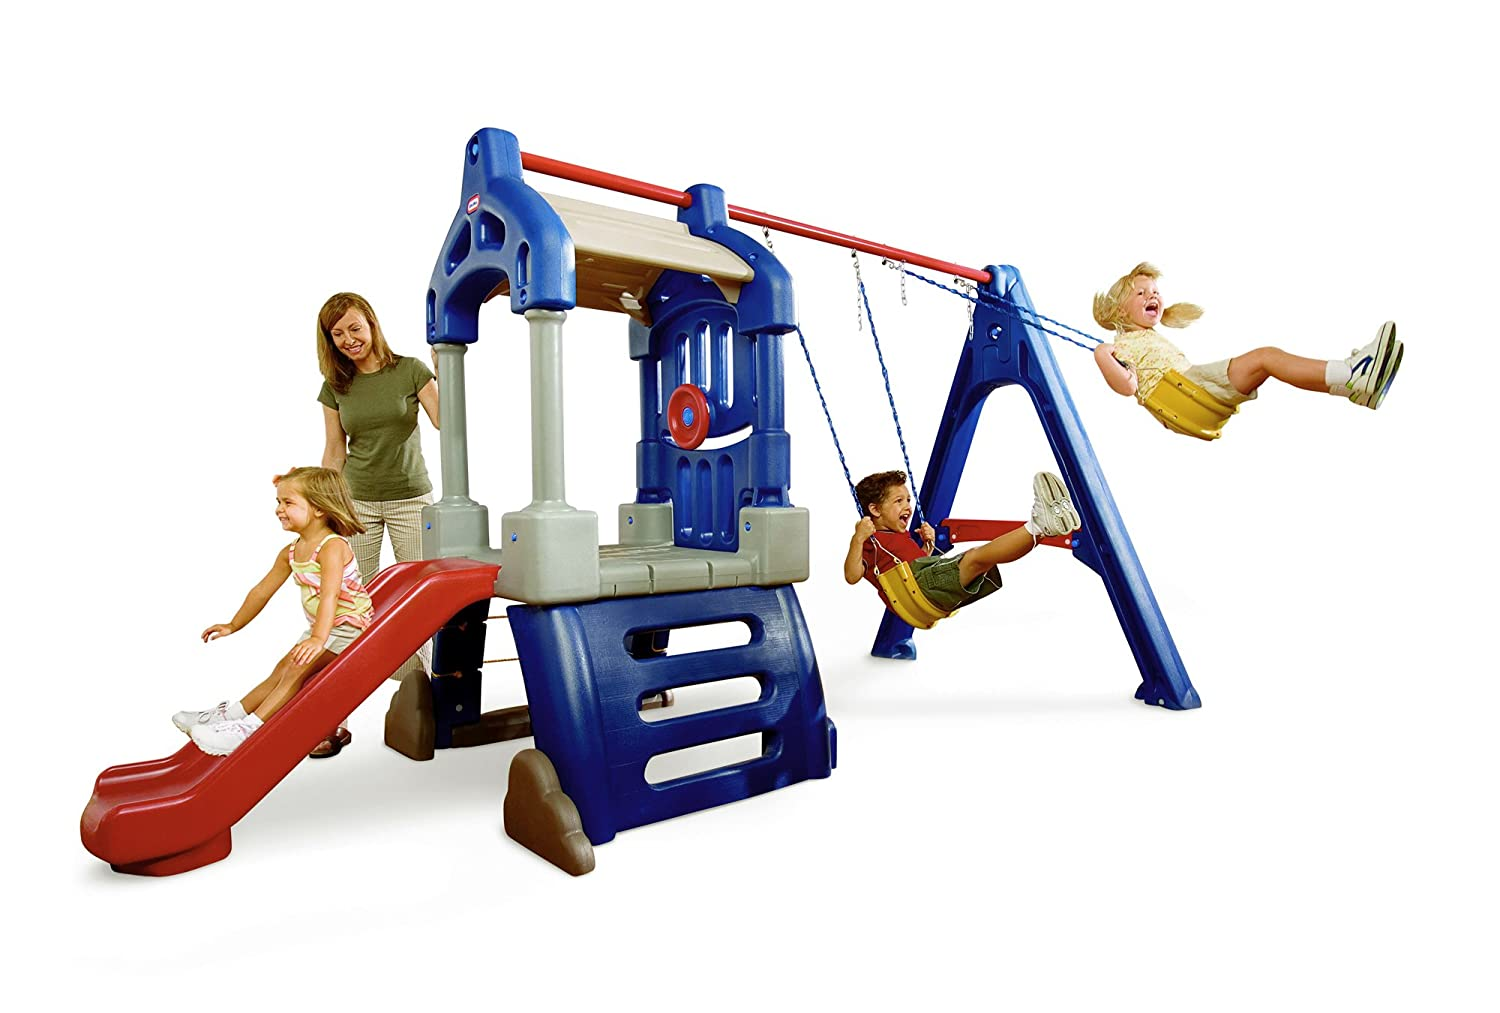 Little Tikes Swing Set এর ছবির ফলাফল